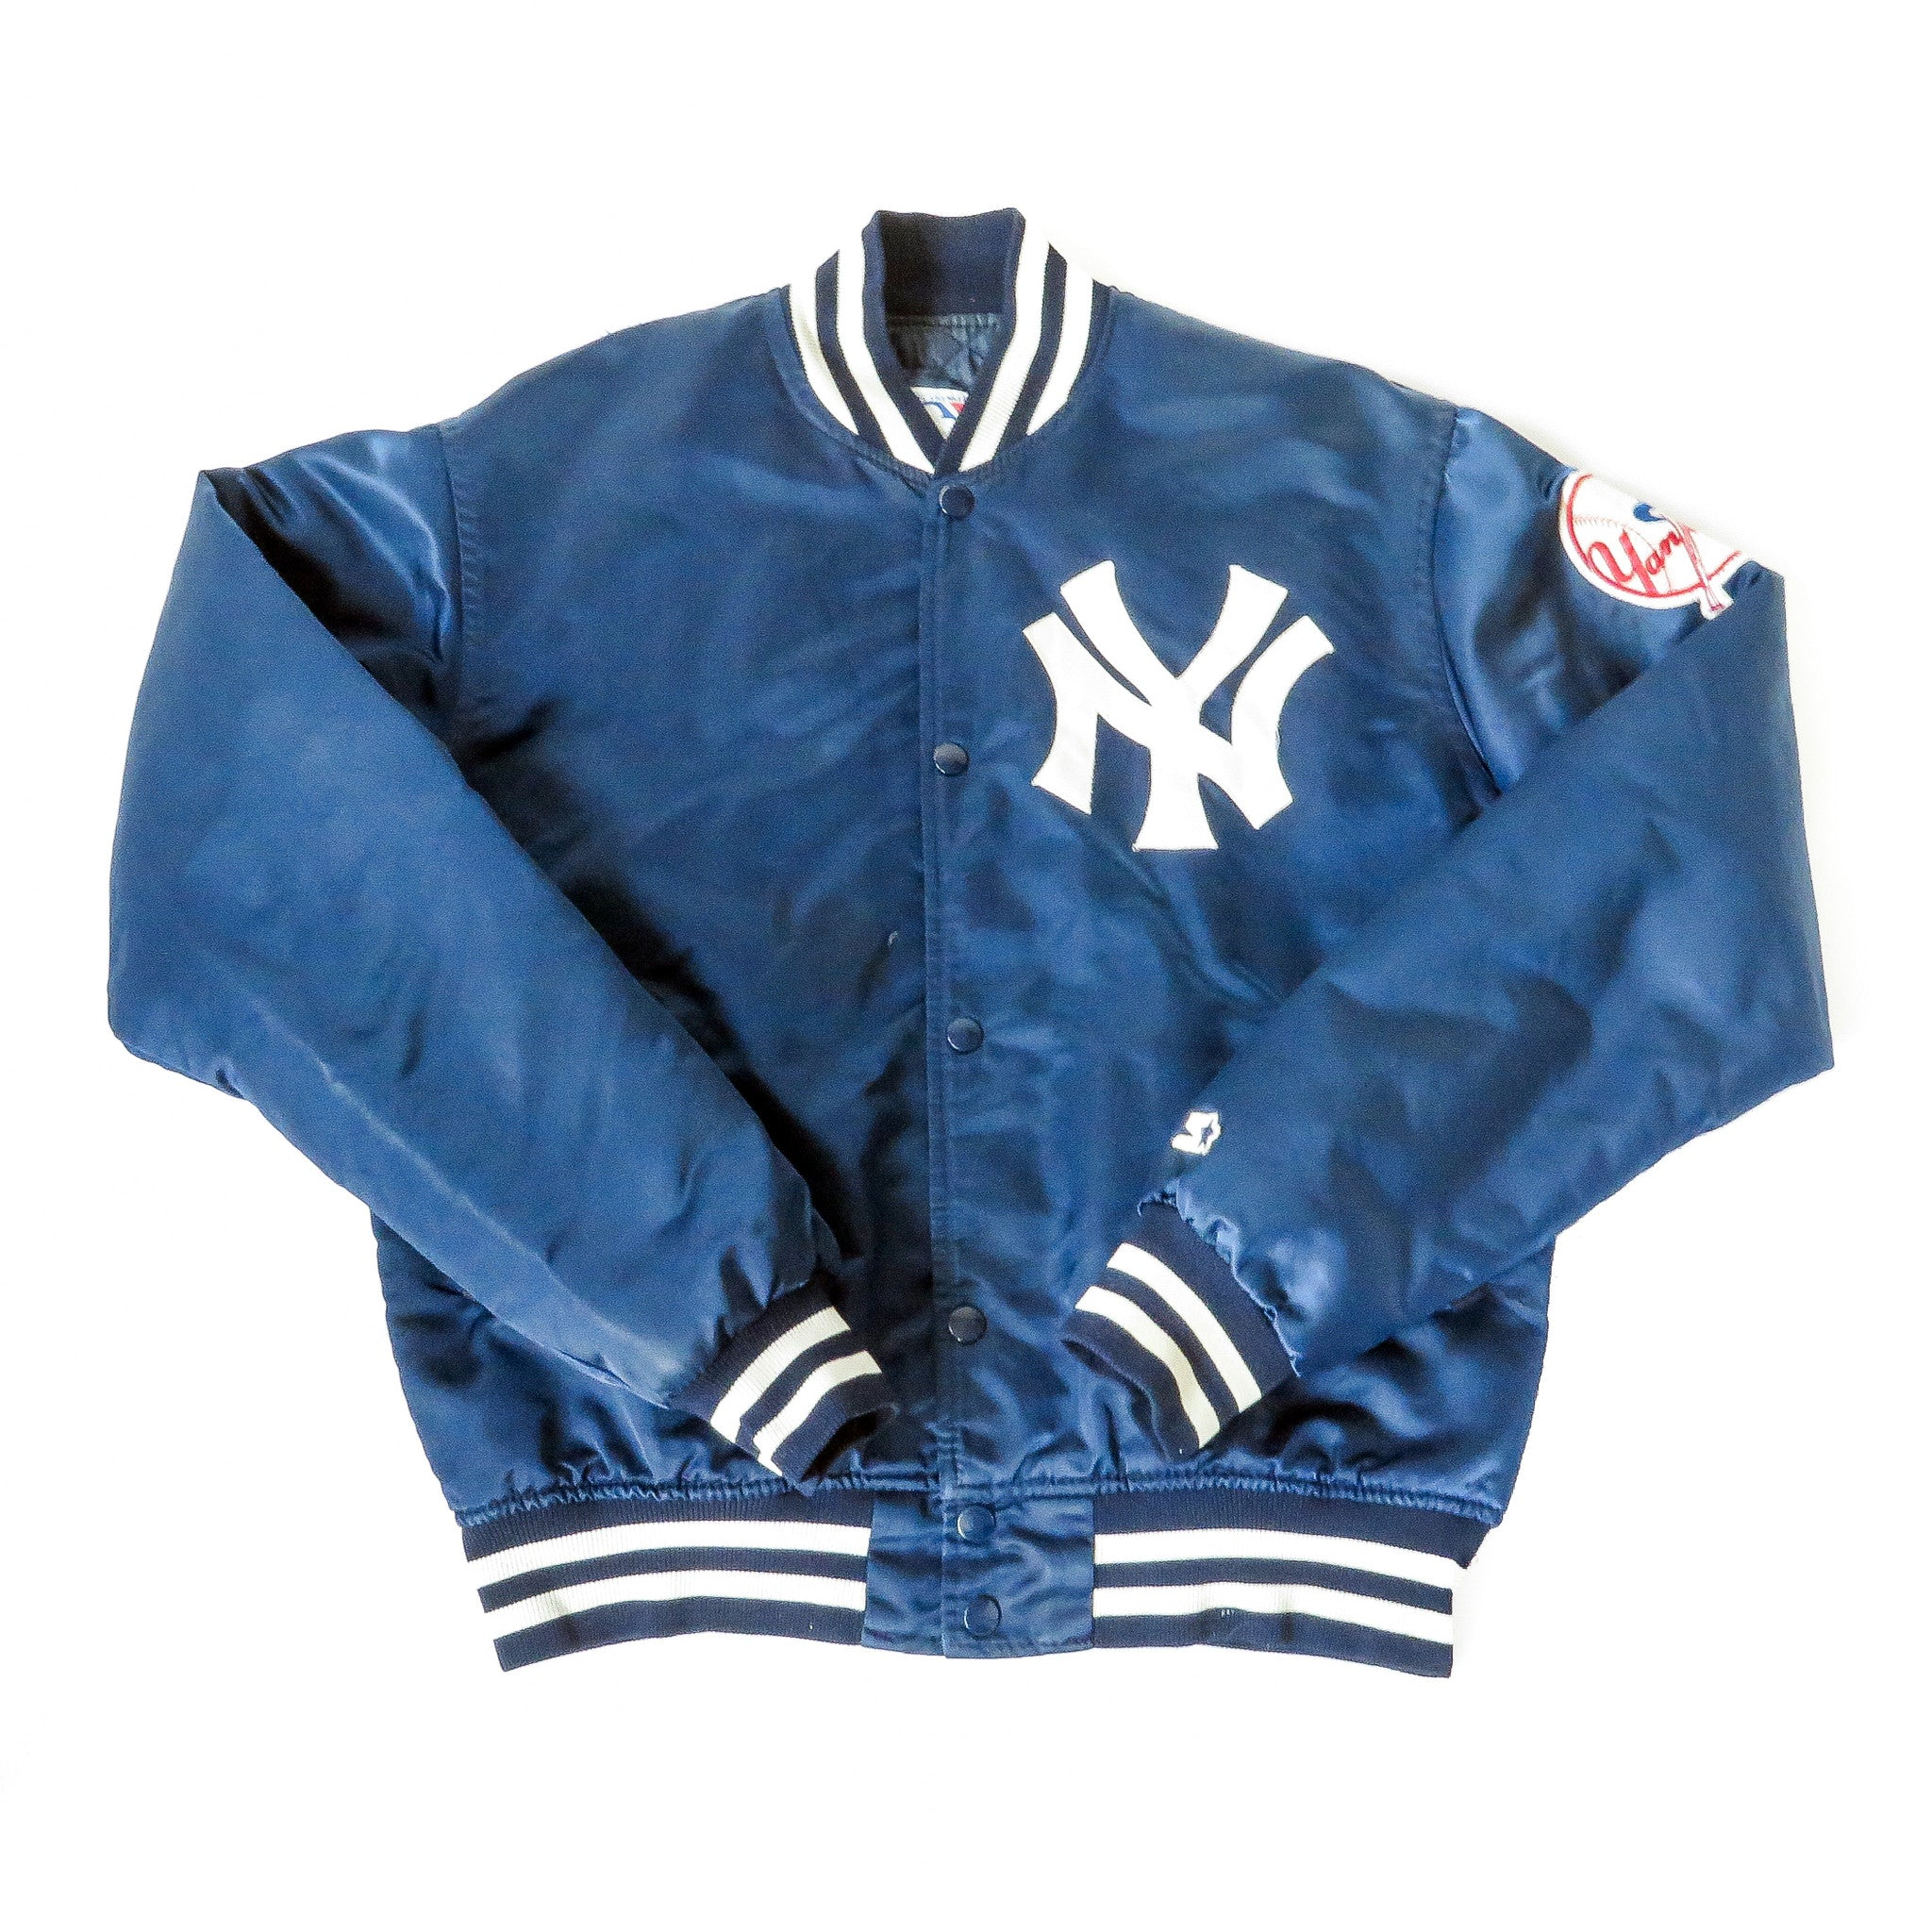 Vintage New York Yankees Starter Jacket Sz M